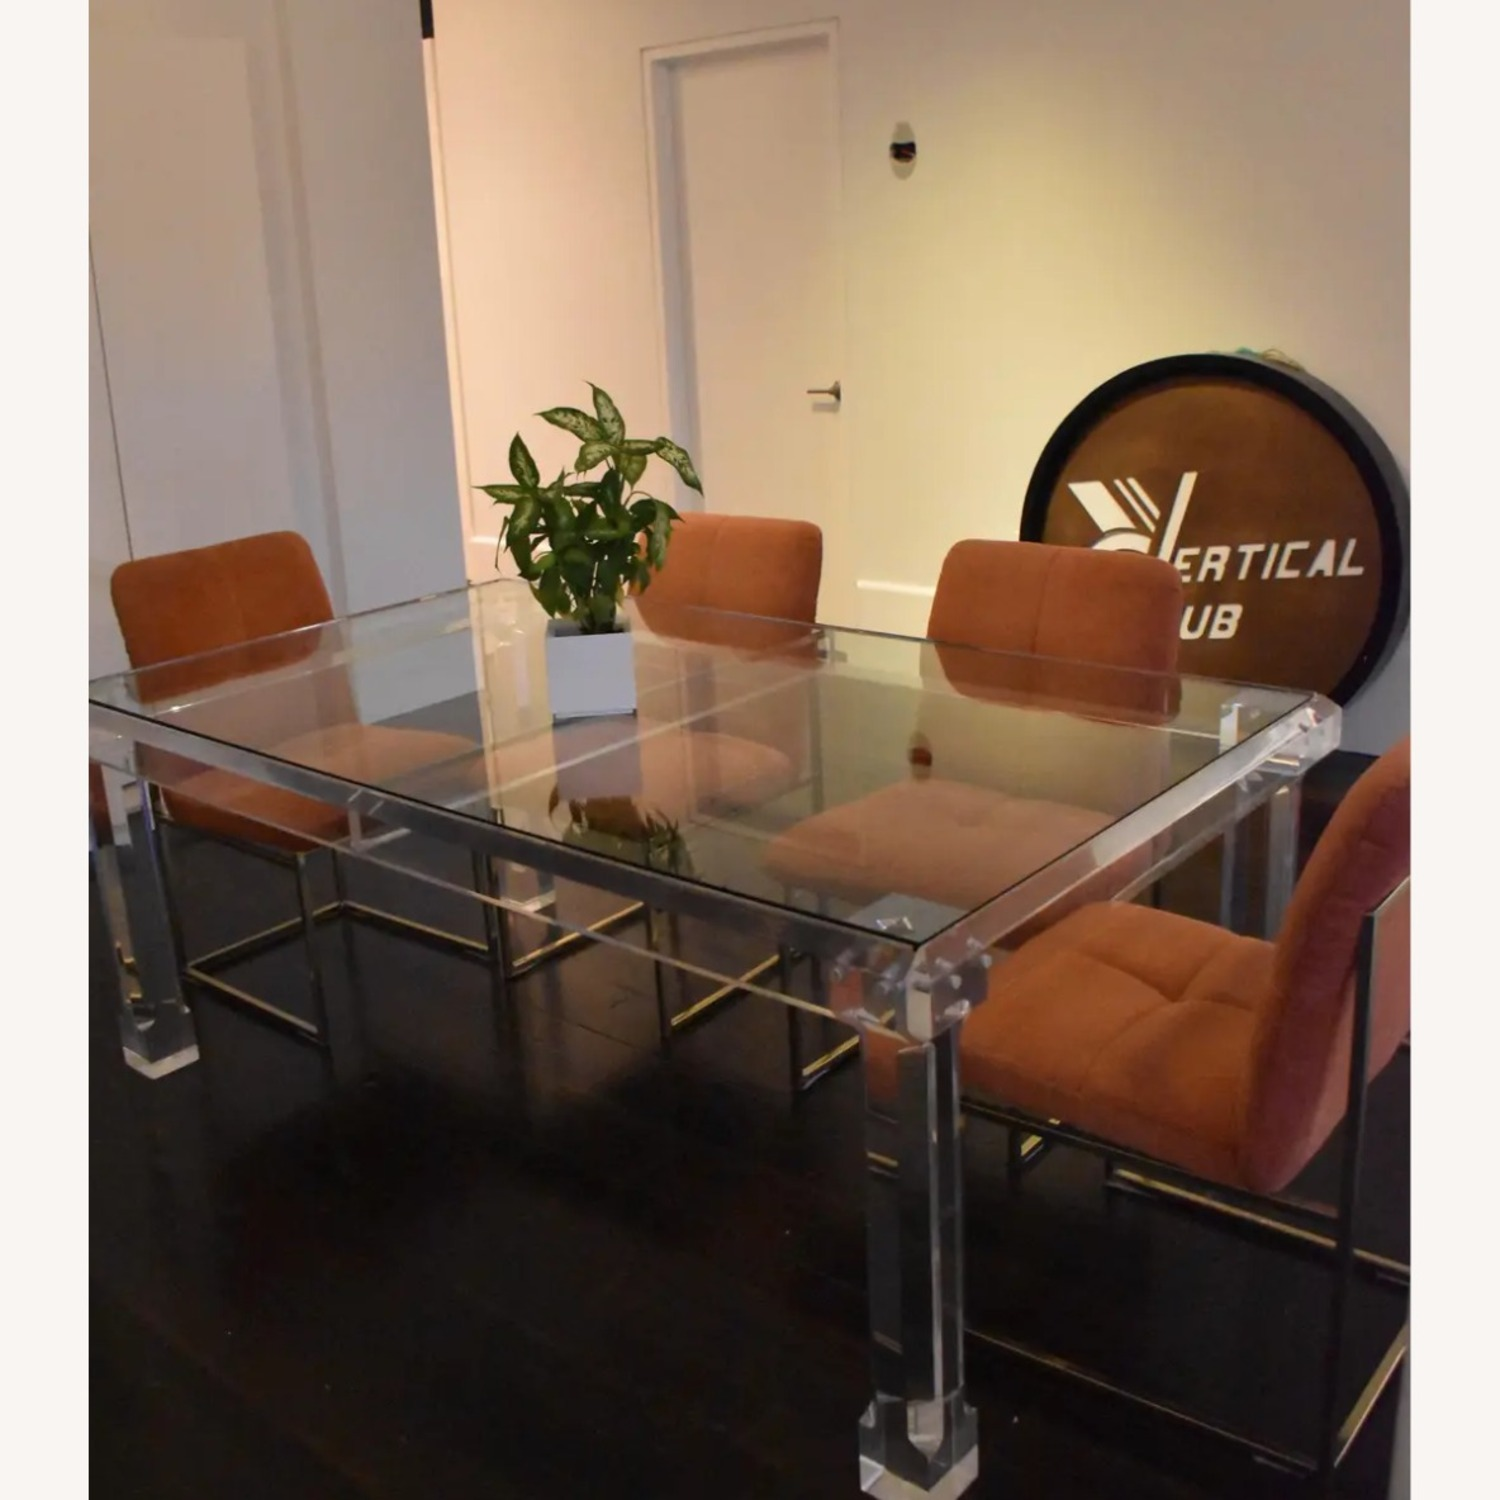 1970s Glass & Lucite Dining Room Table - image-5